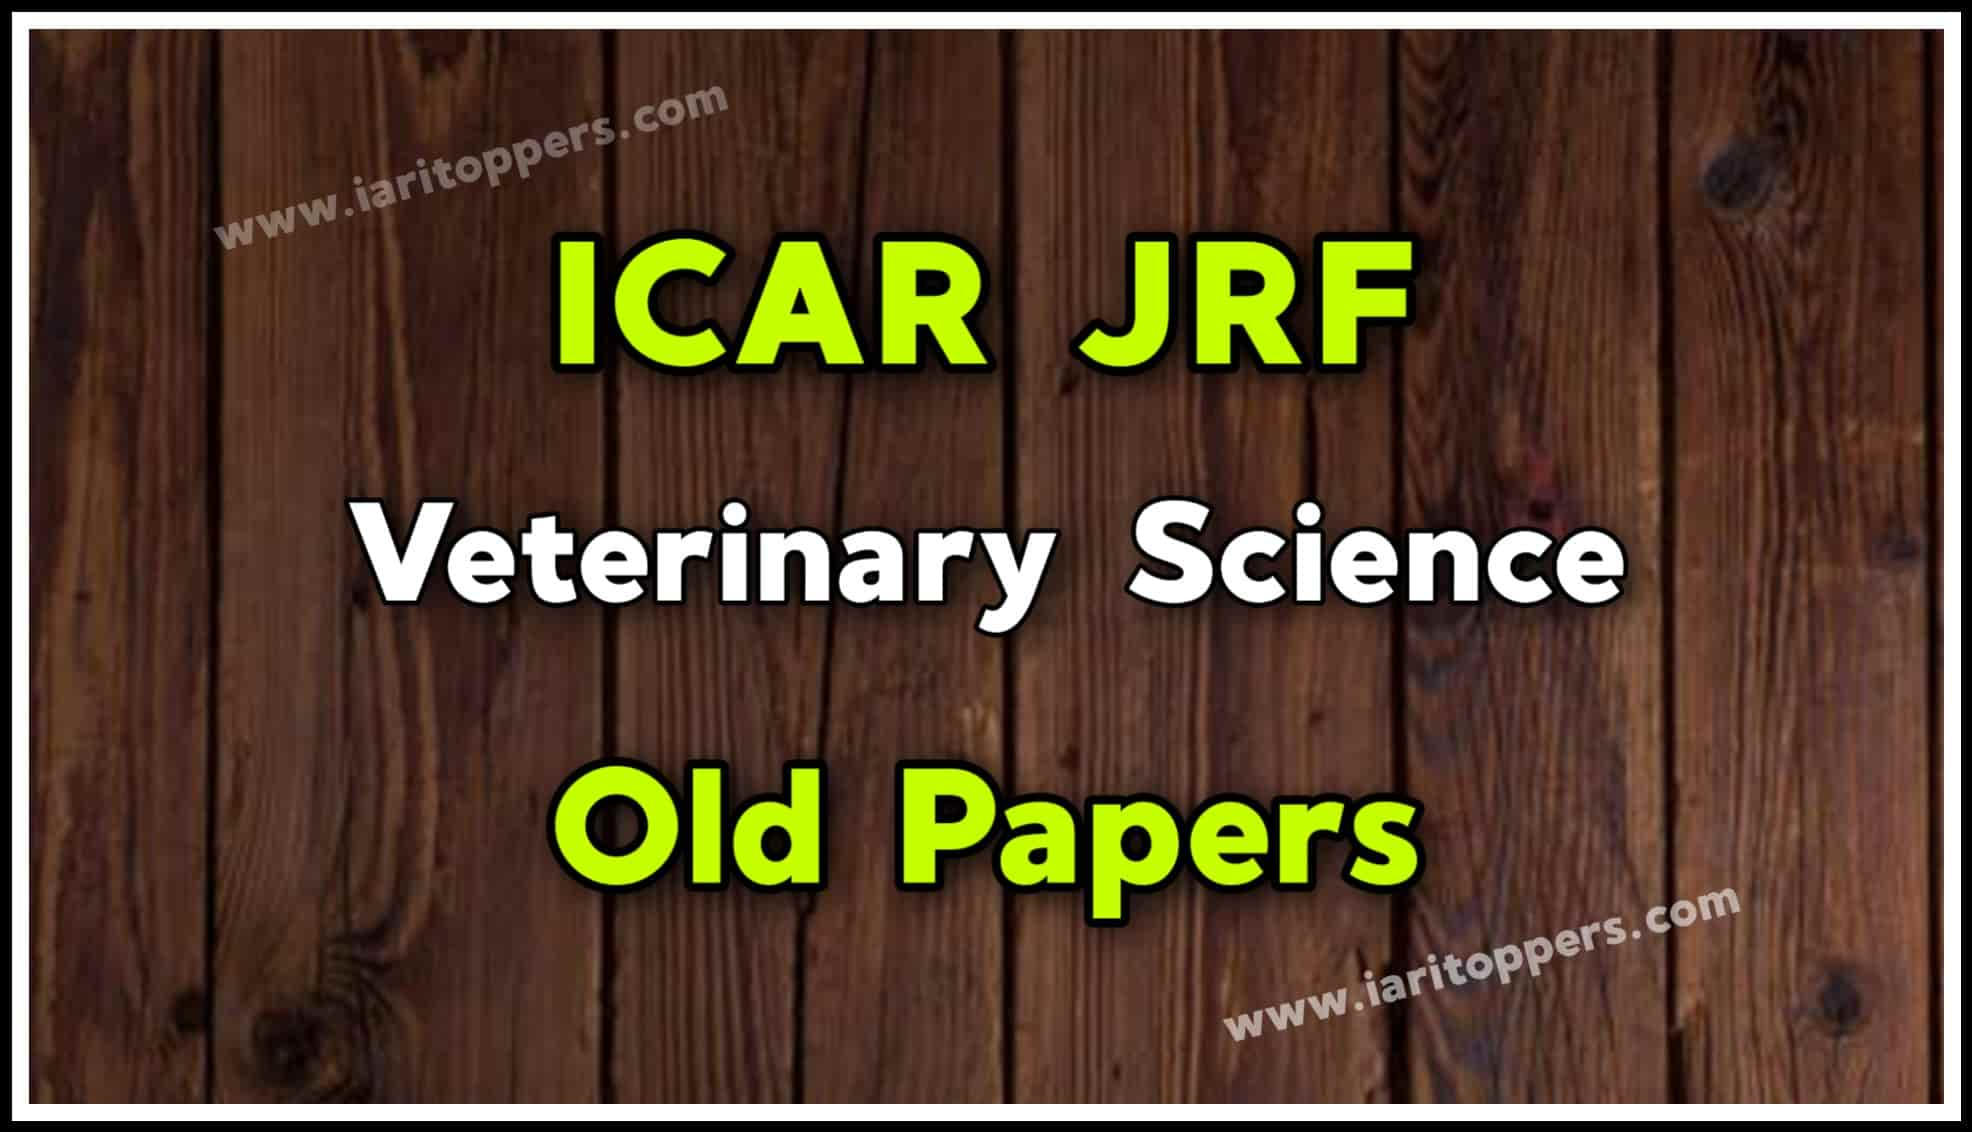 ICAR JRF Veterinary Science Old Papers PDF Download